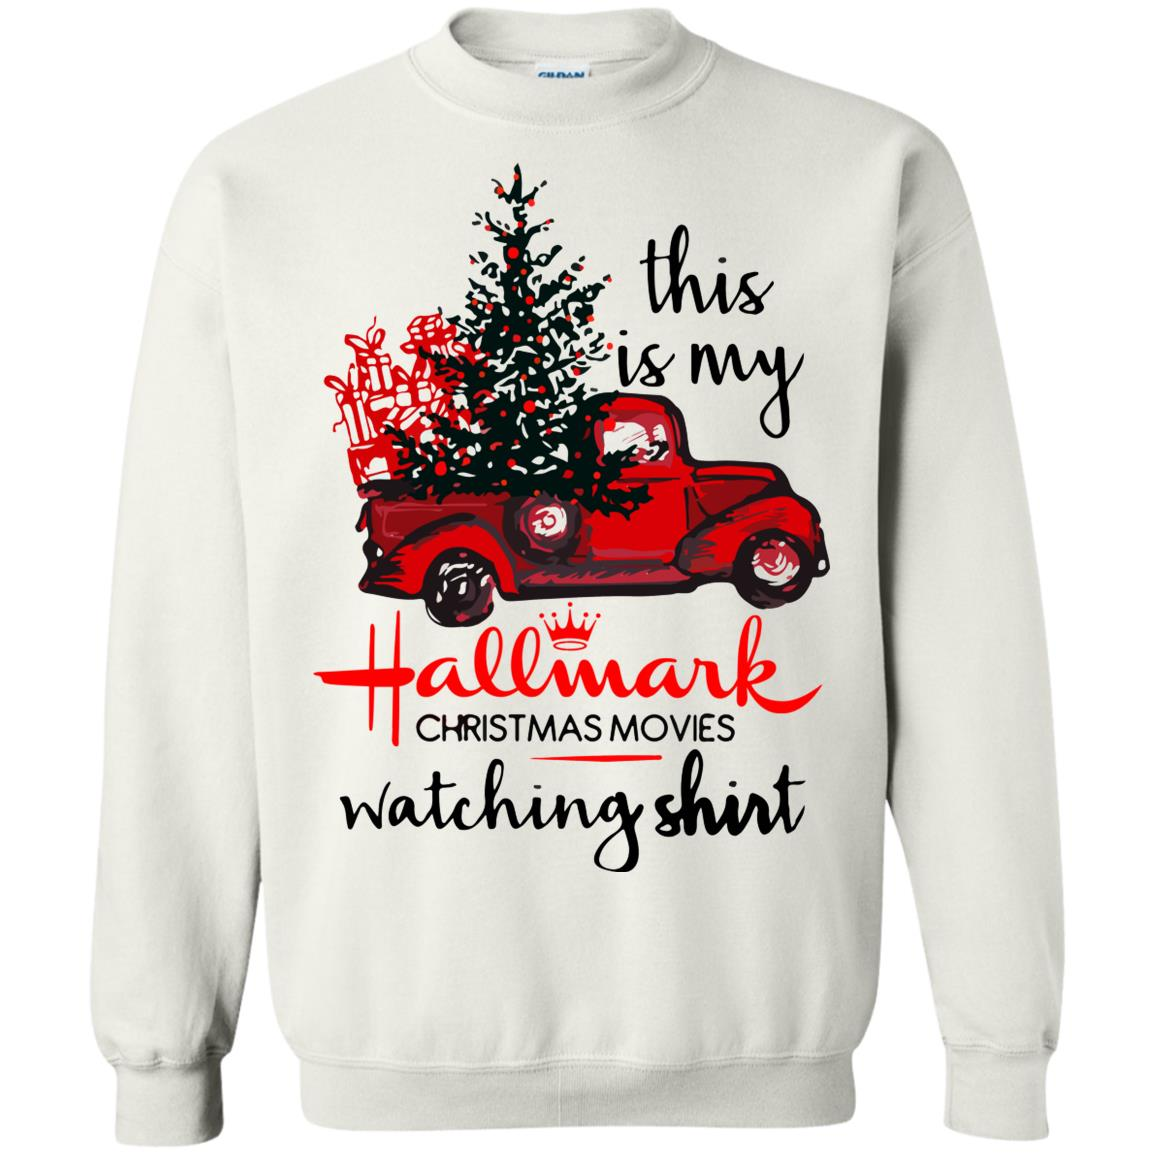 a8cb3c544acf7 Hallmark Christmas movie sweatshirt shirt - image 5109 510x510